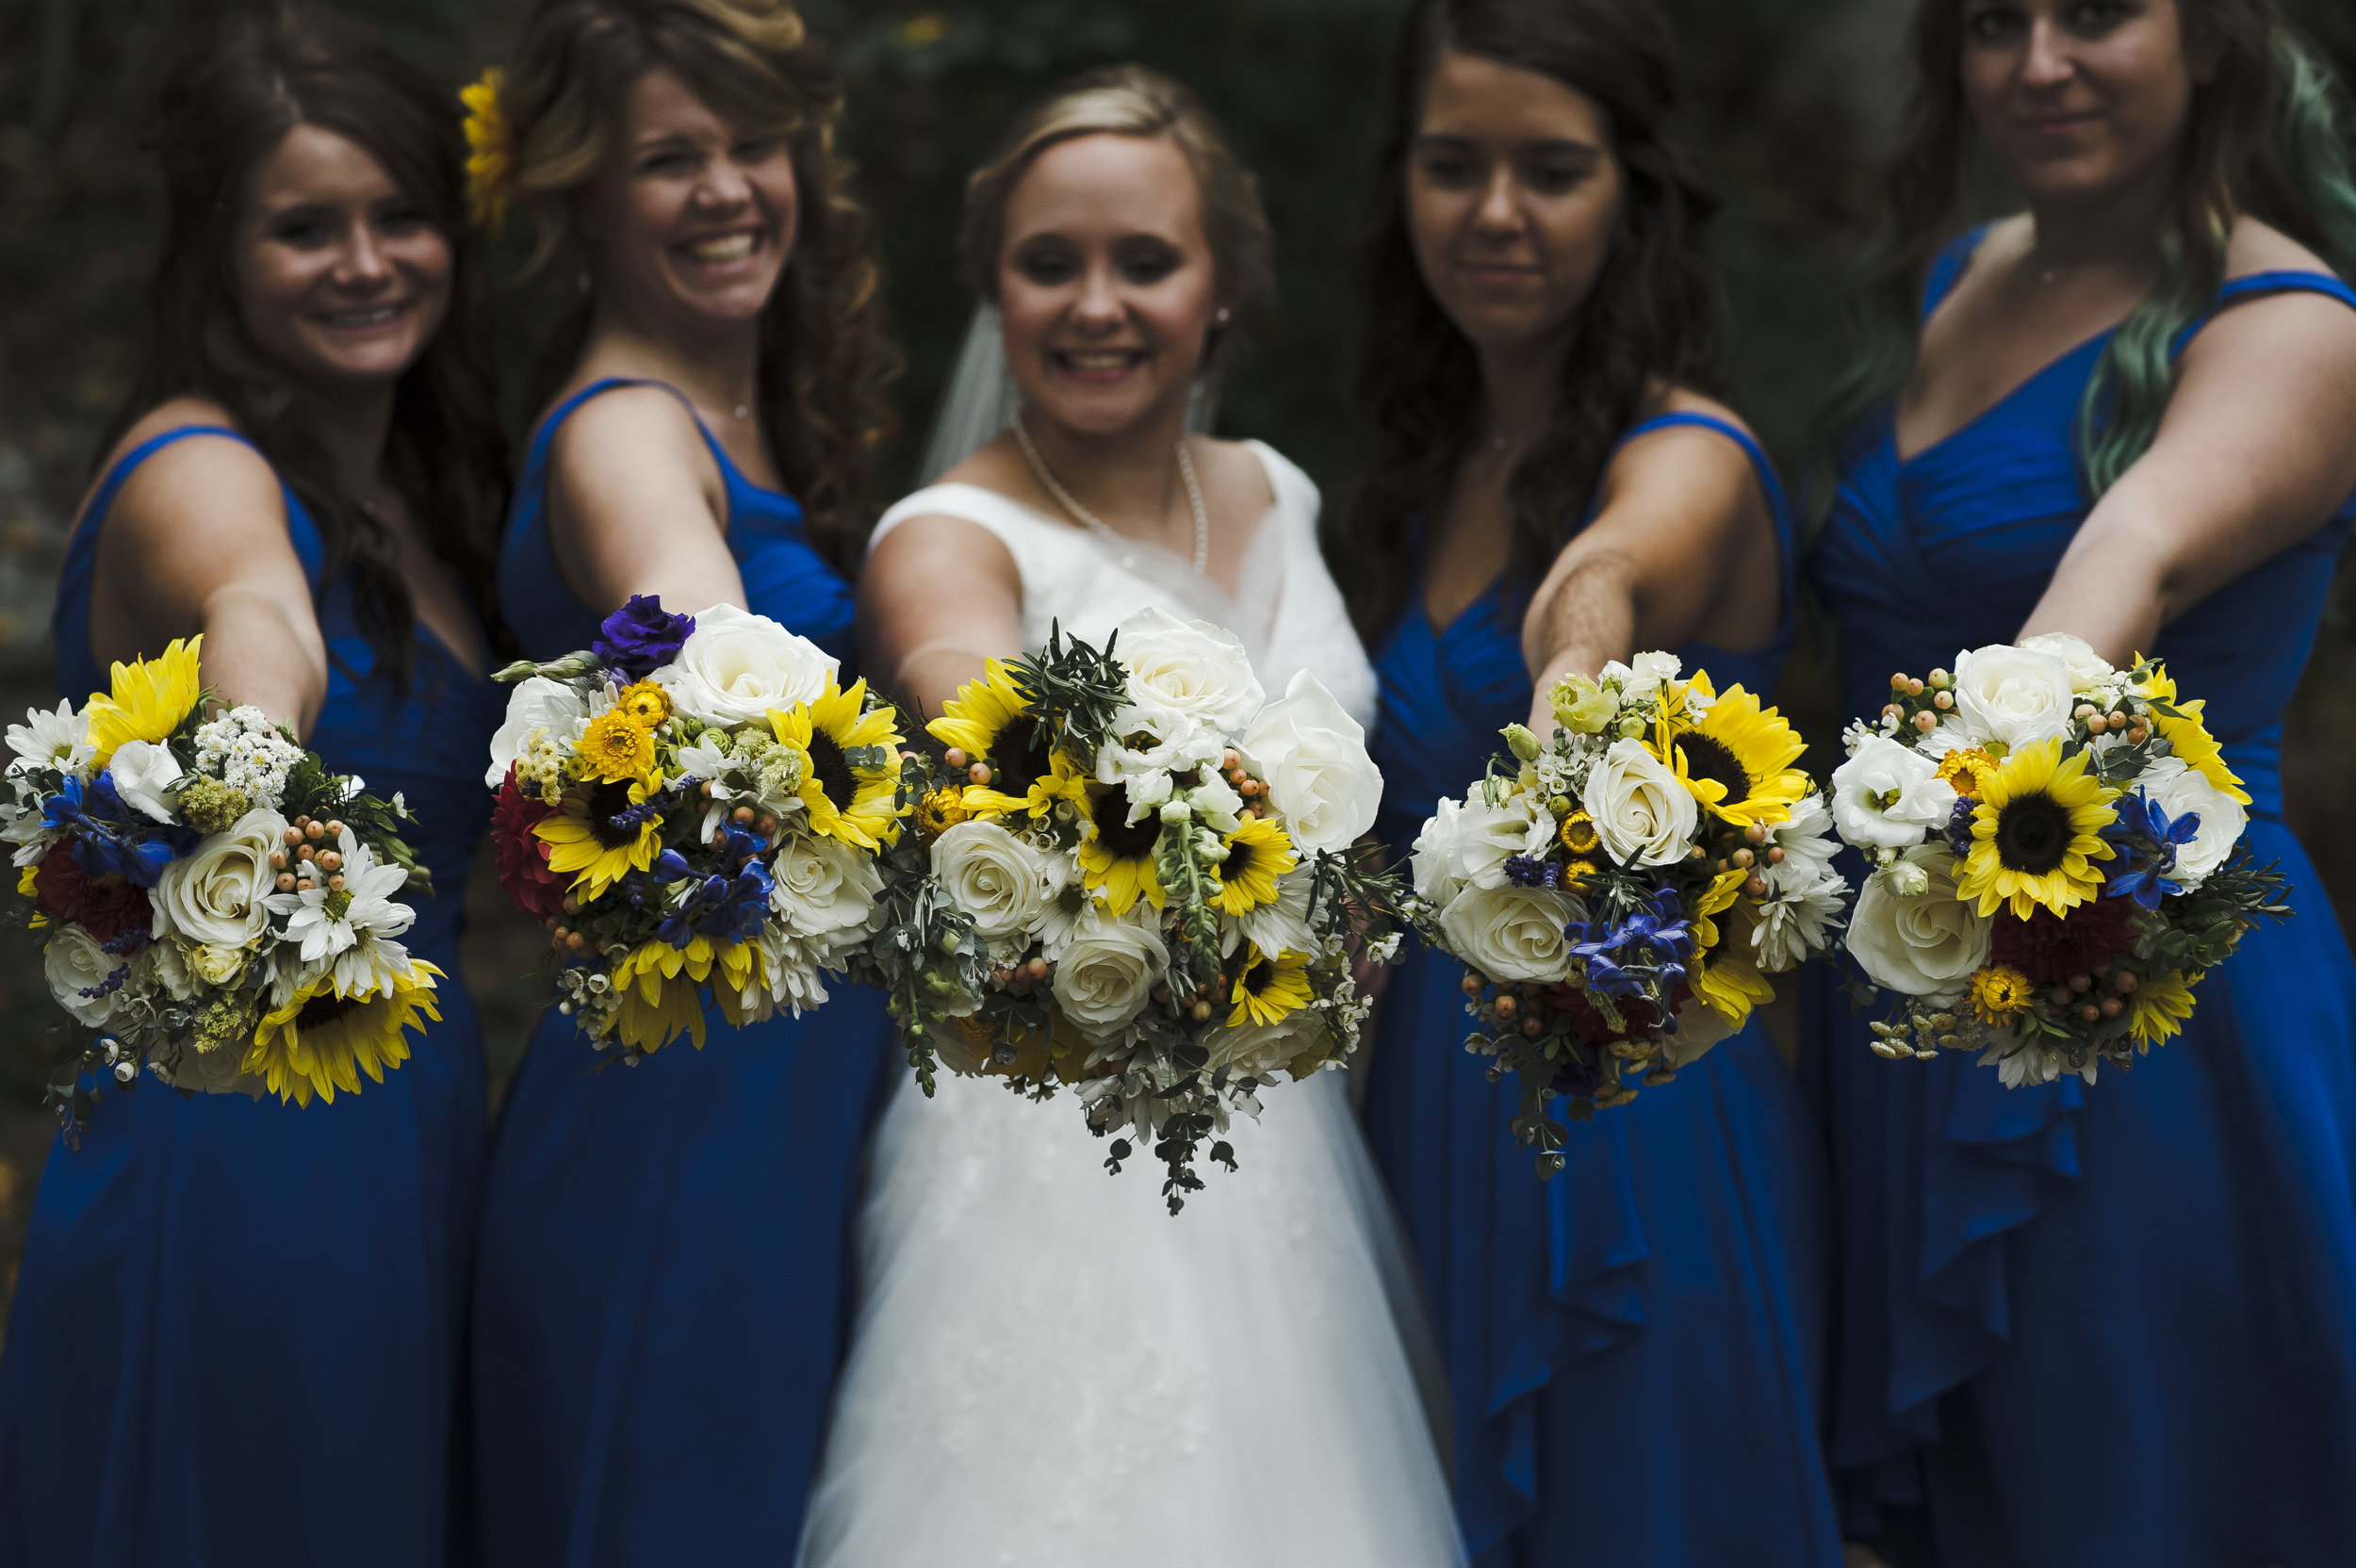 The yellow and white is striking against that royal blue!